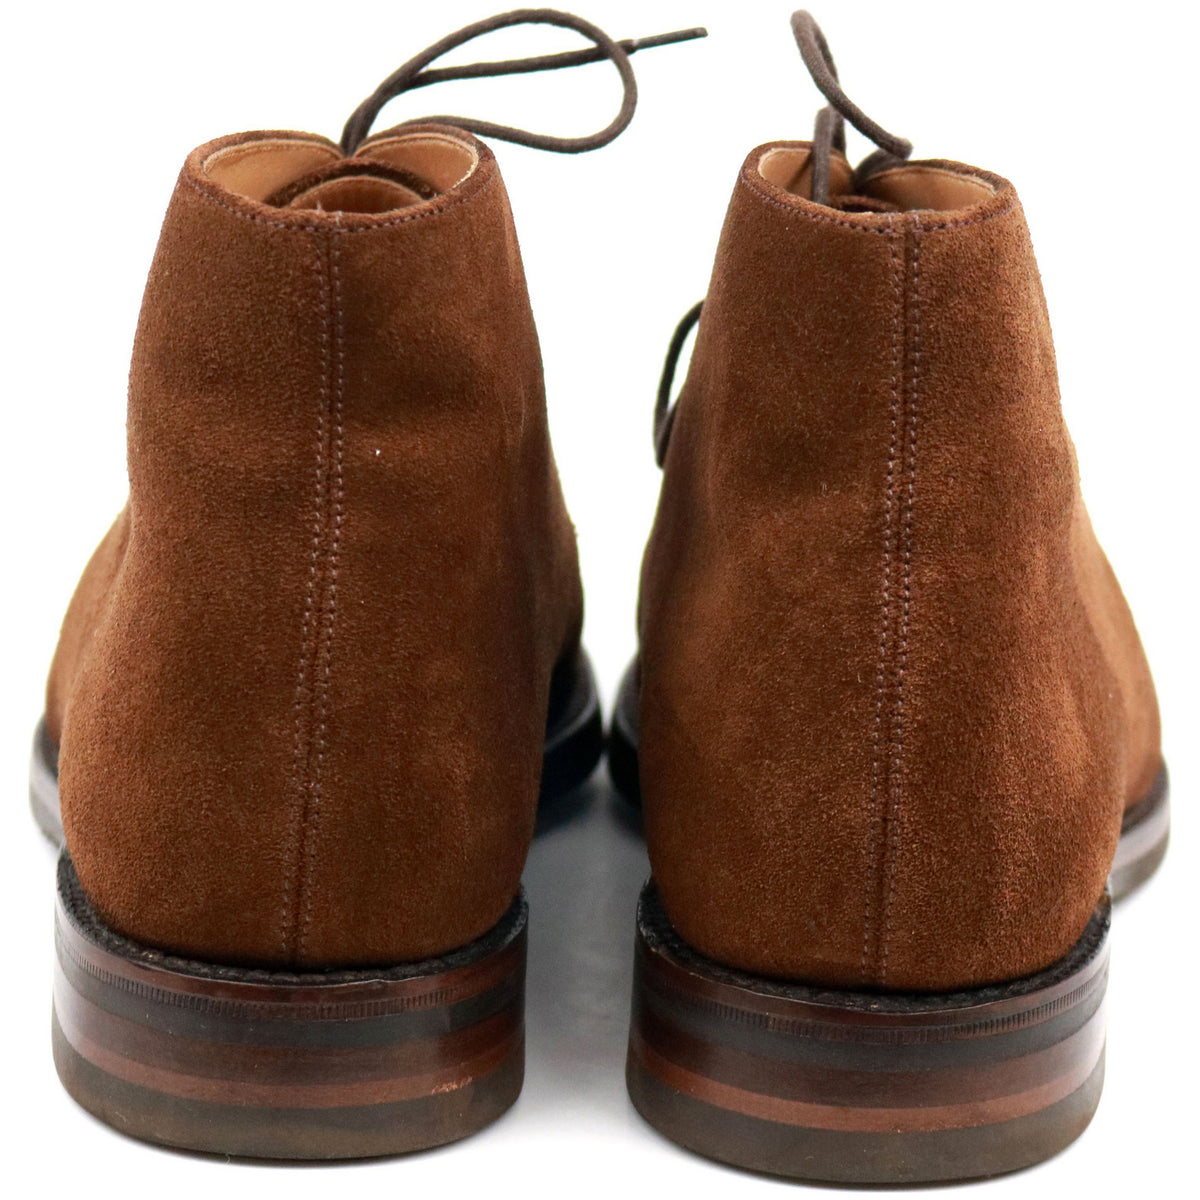 Loake 1880 'Kempton' Brown Suede Chukka Boots UK 9 F